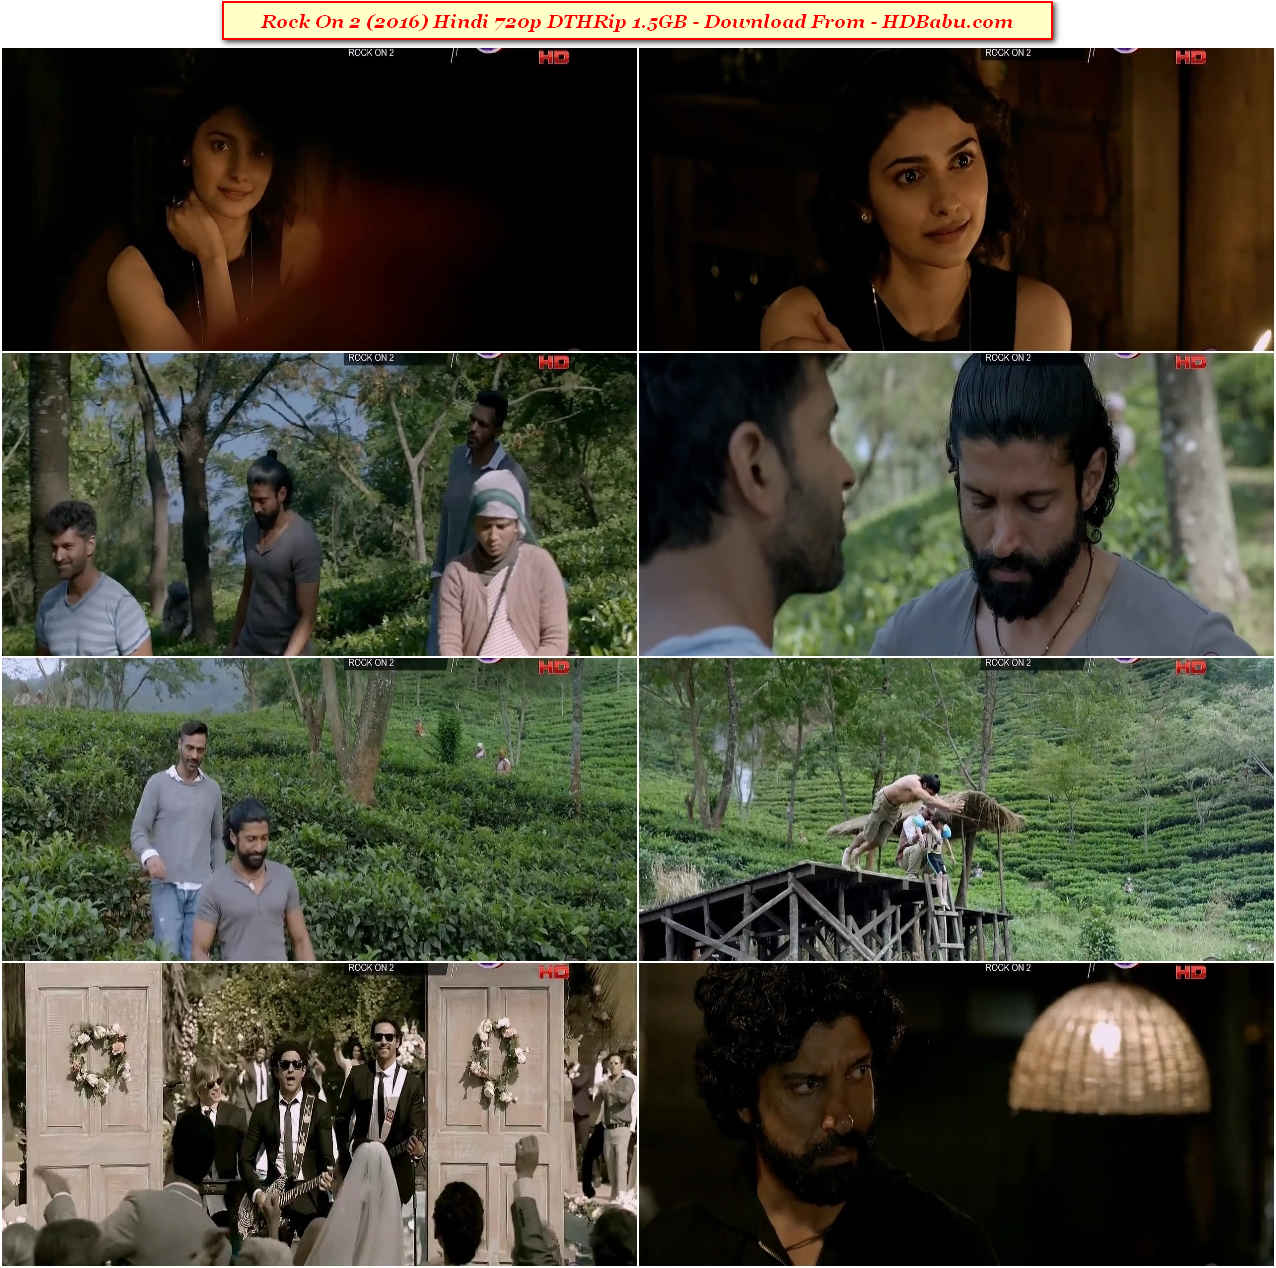 Rock on 2 Movie Download HD